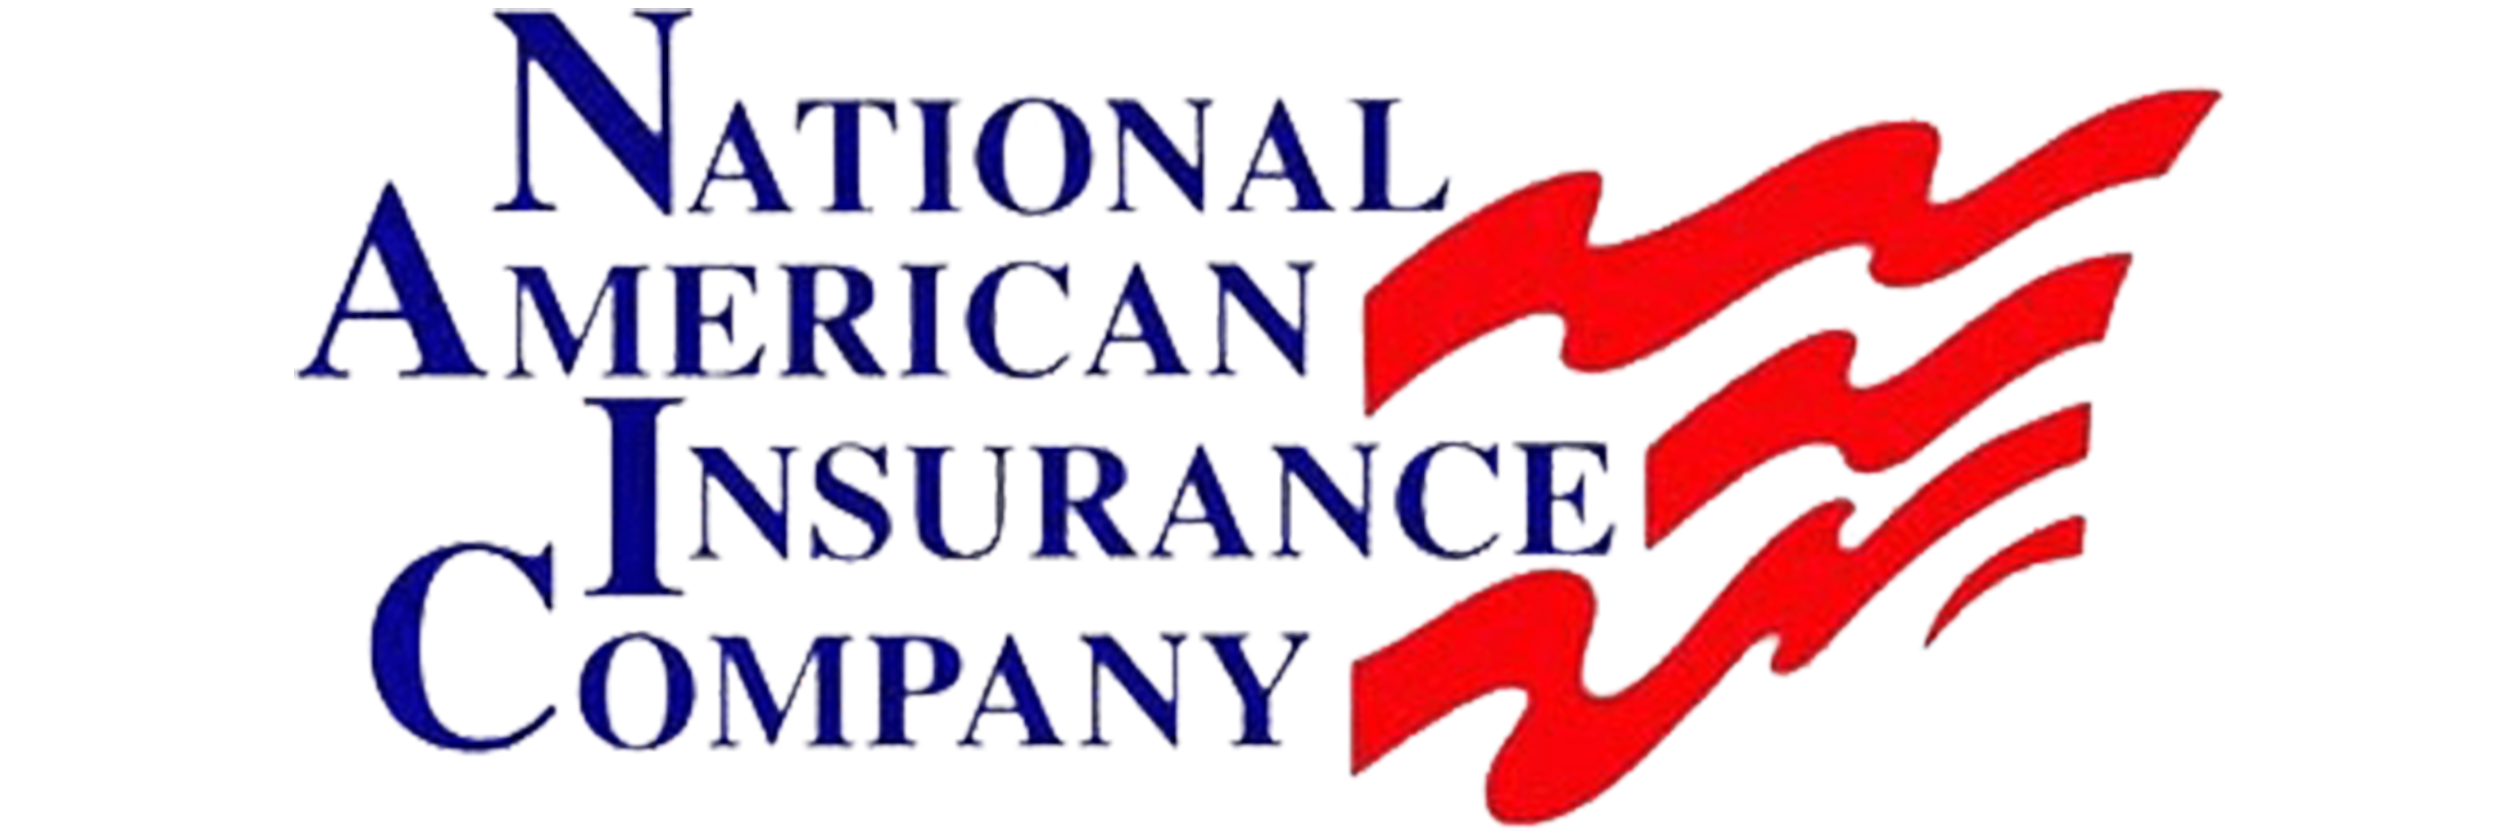 NationalAmericanInsuranceCompany.png